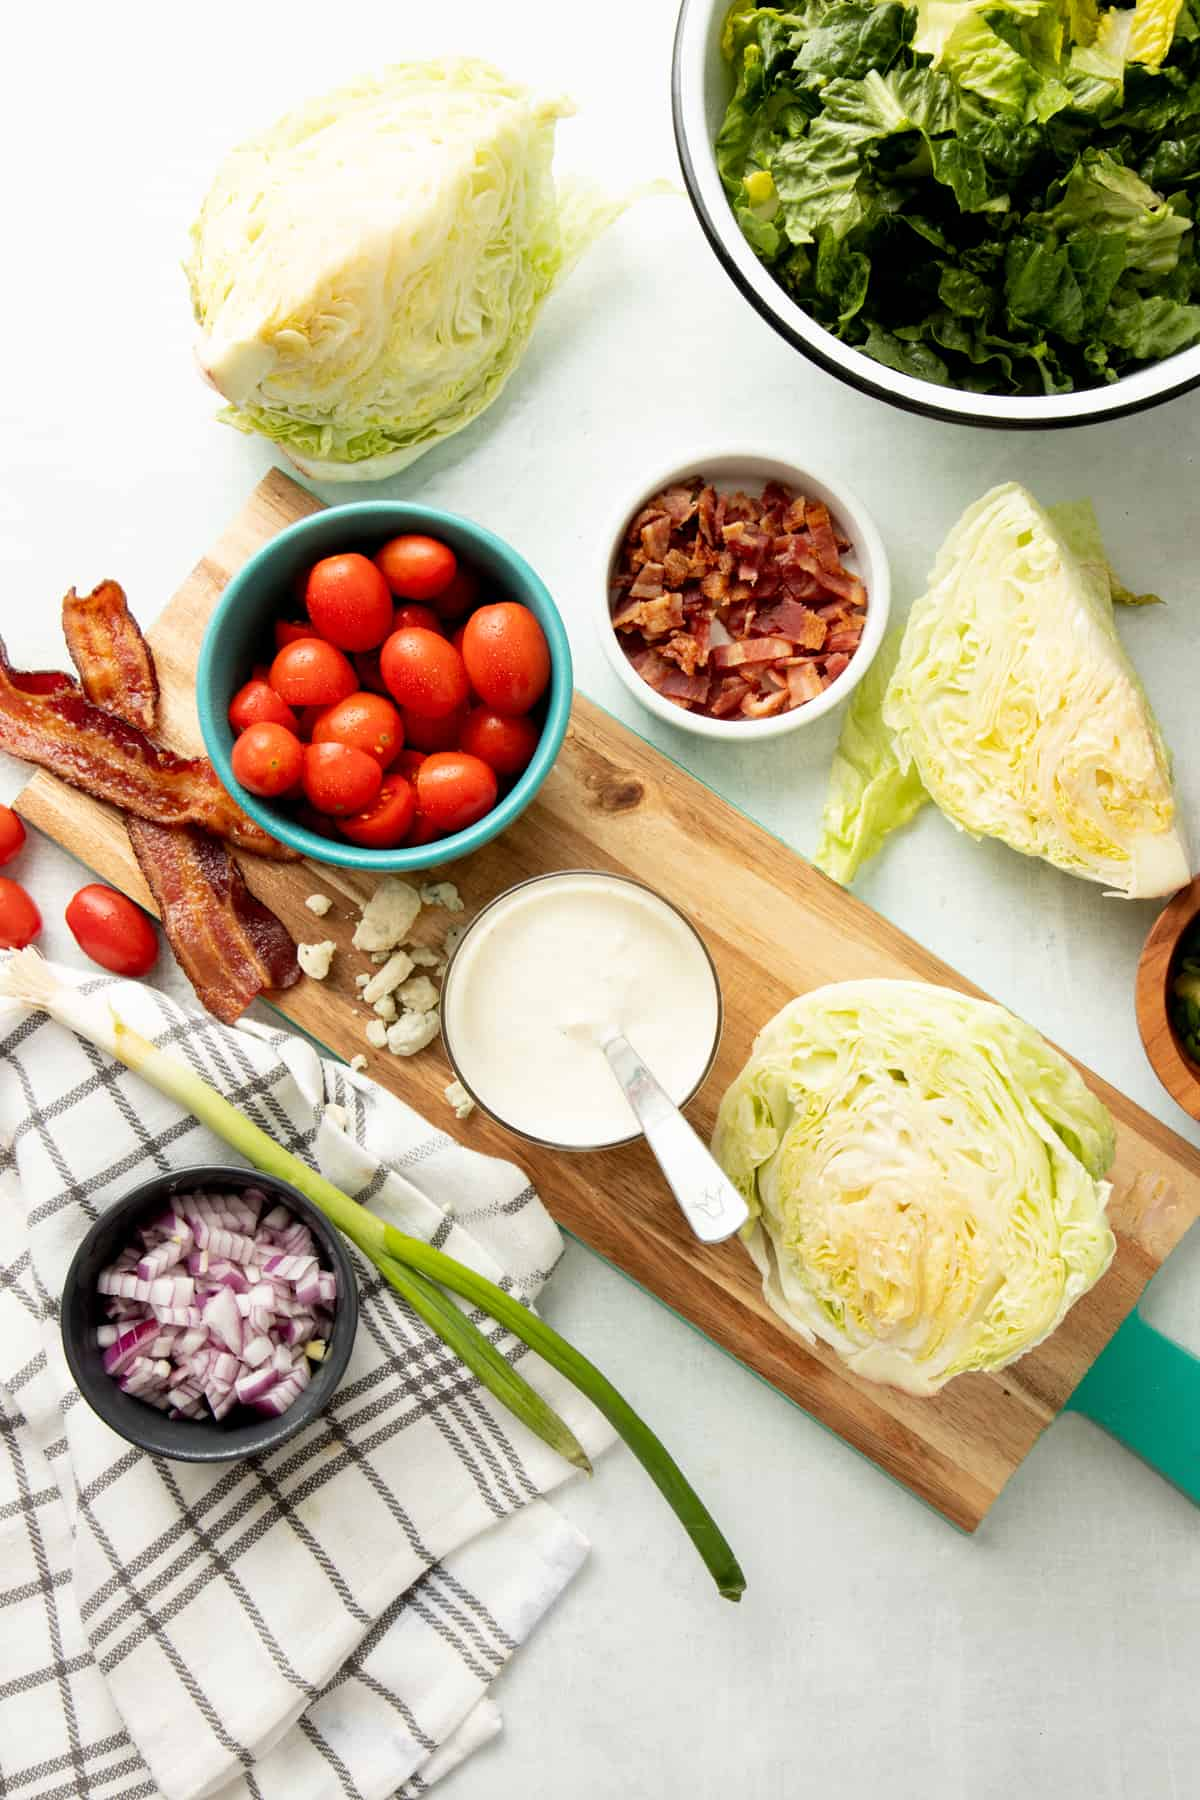 Ingredients for a wedge salad are laid out on a white counter, wooden cutting board, and plaid dish towel.